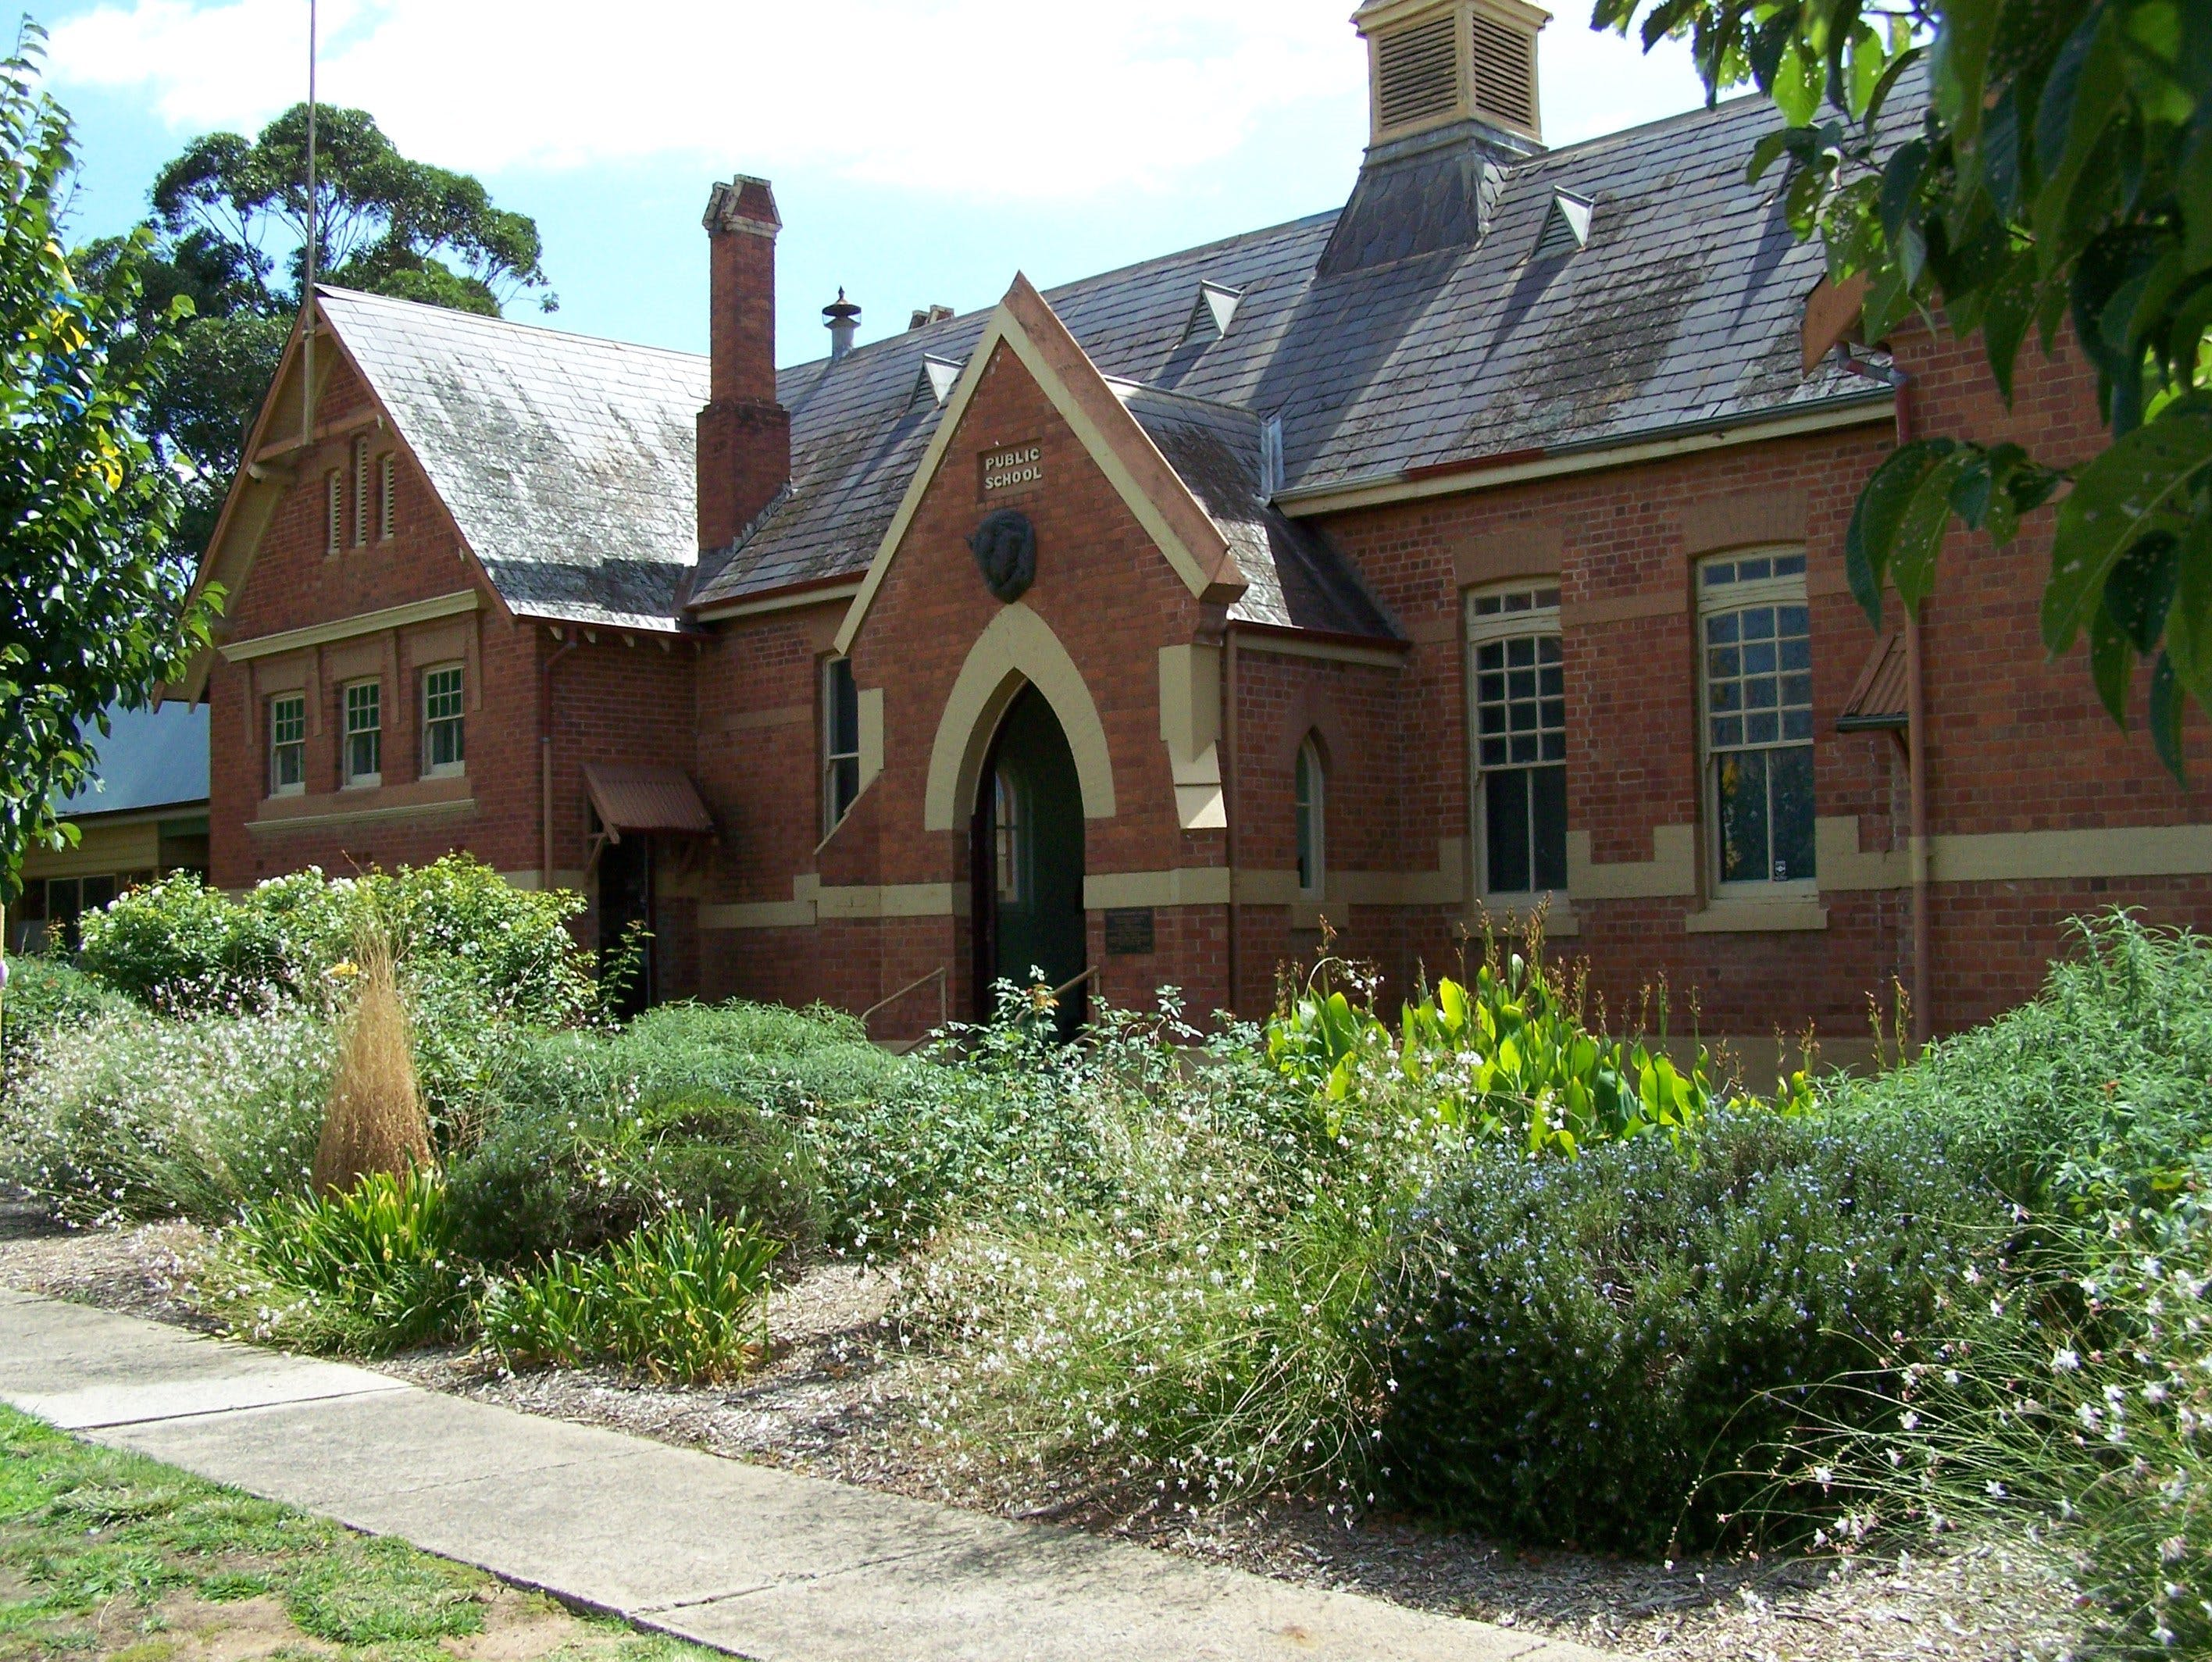 Peppin Heritage Centre - Accommodation Search